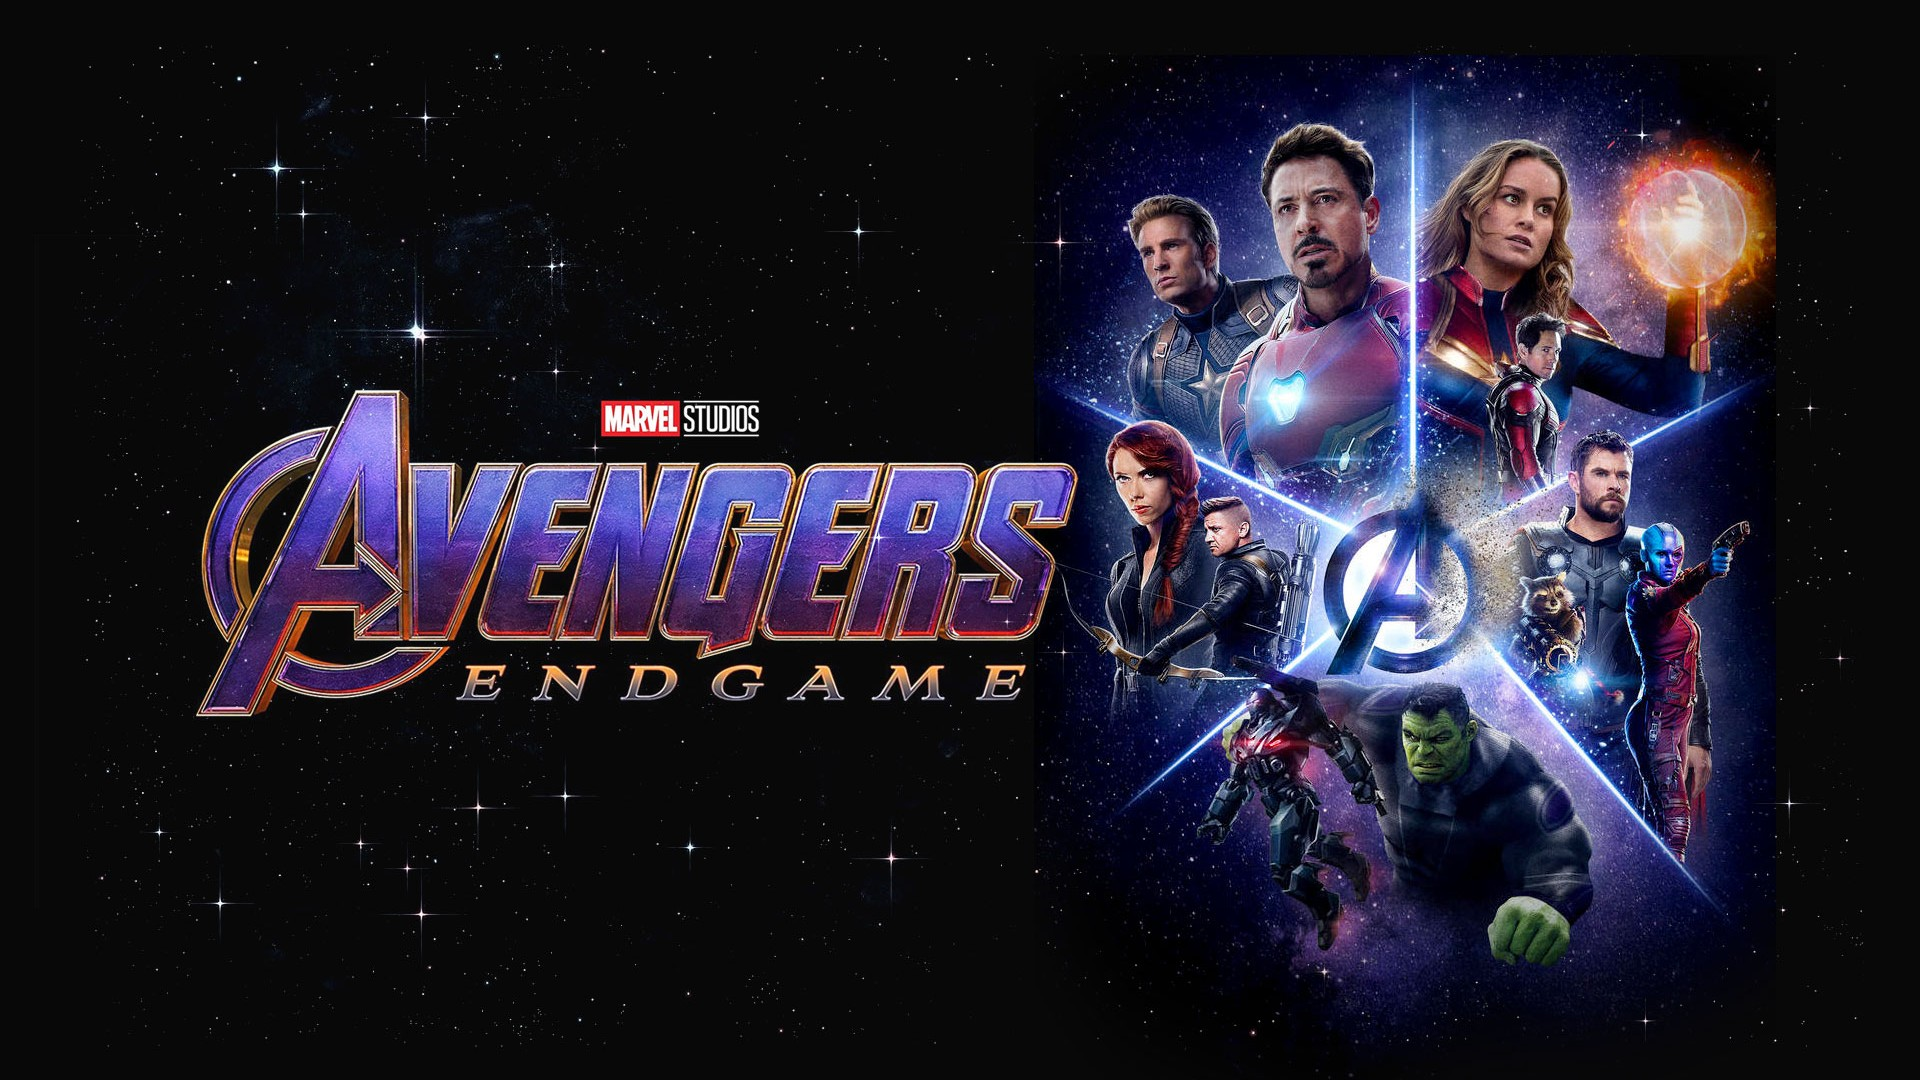 Avengers Endgame 2019 Backgrounds 2019 Movie Poster Wallpaper HD 1920x1080